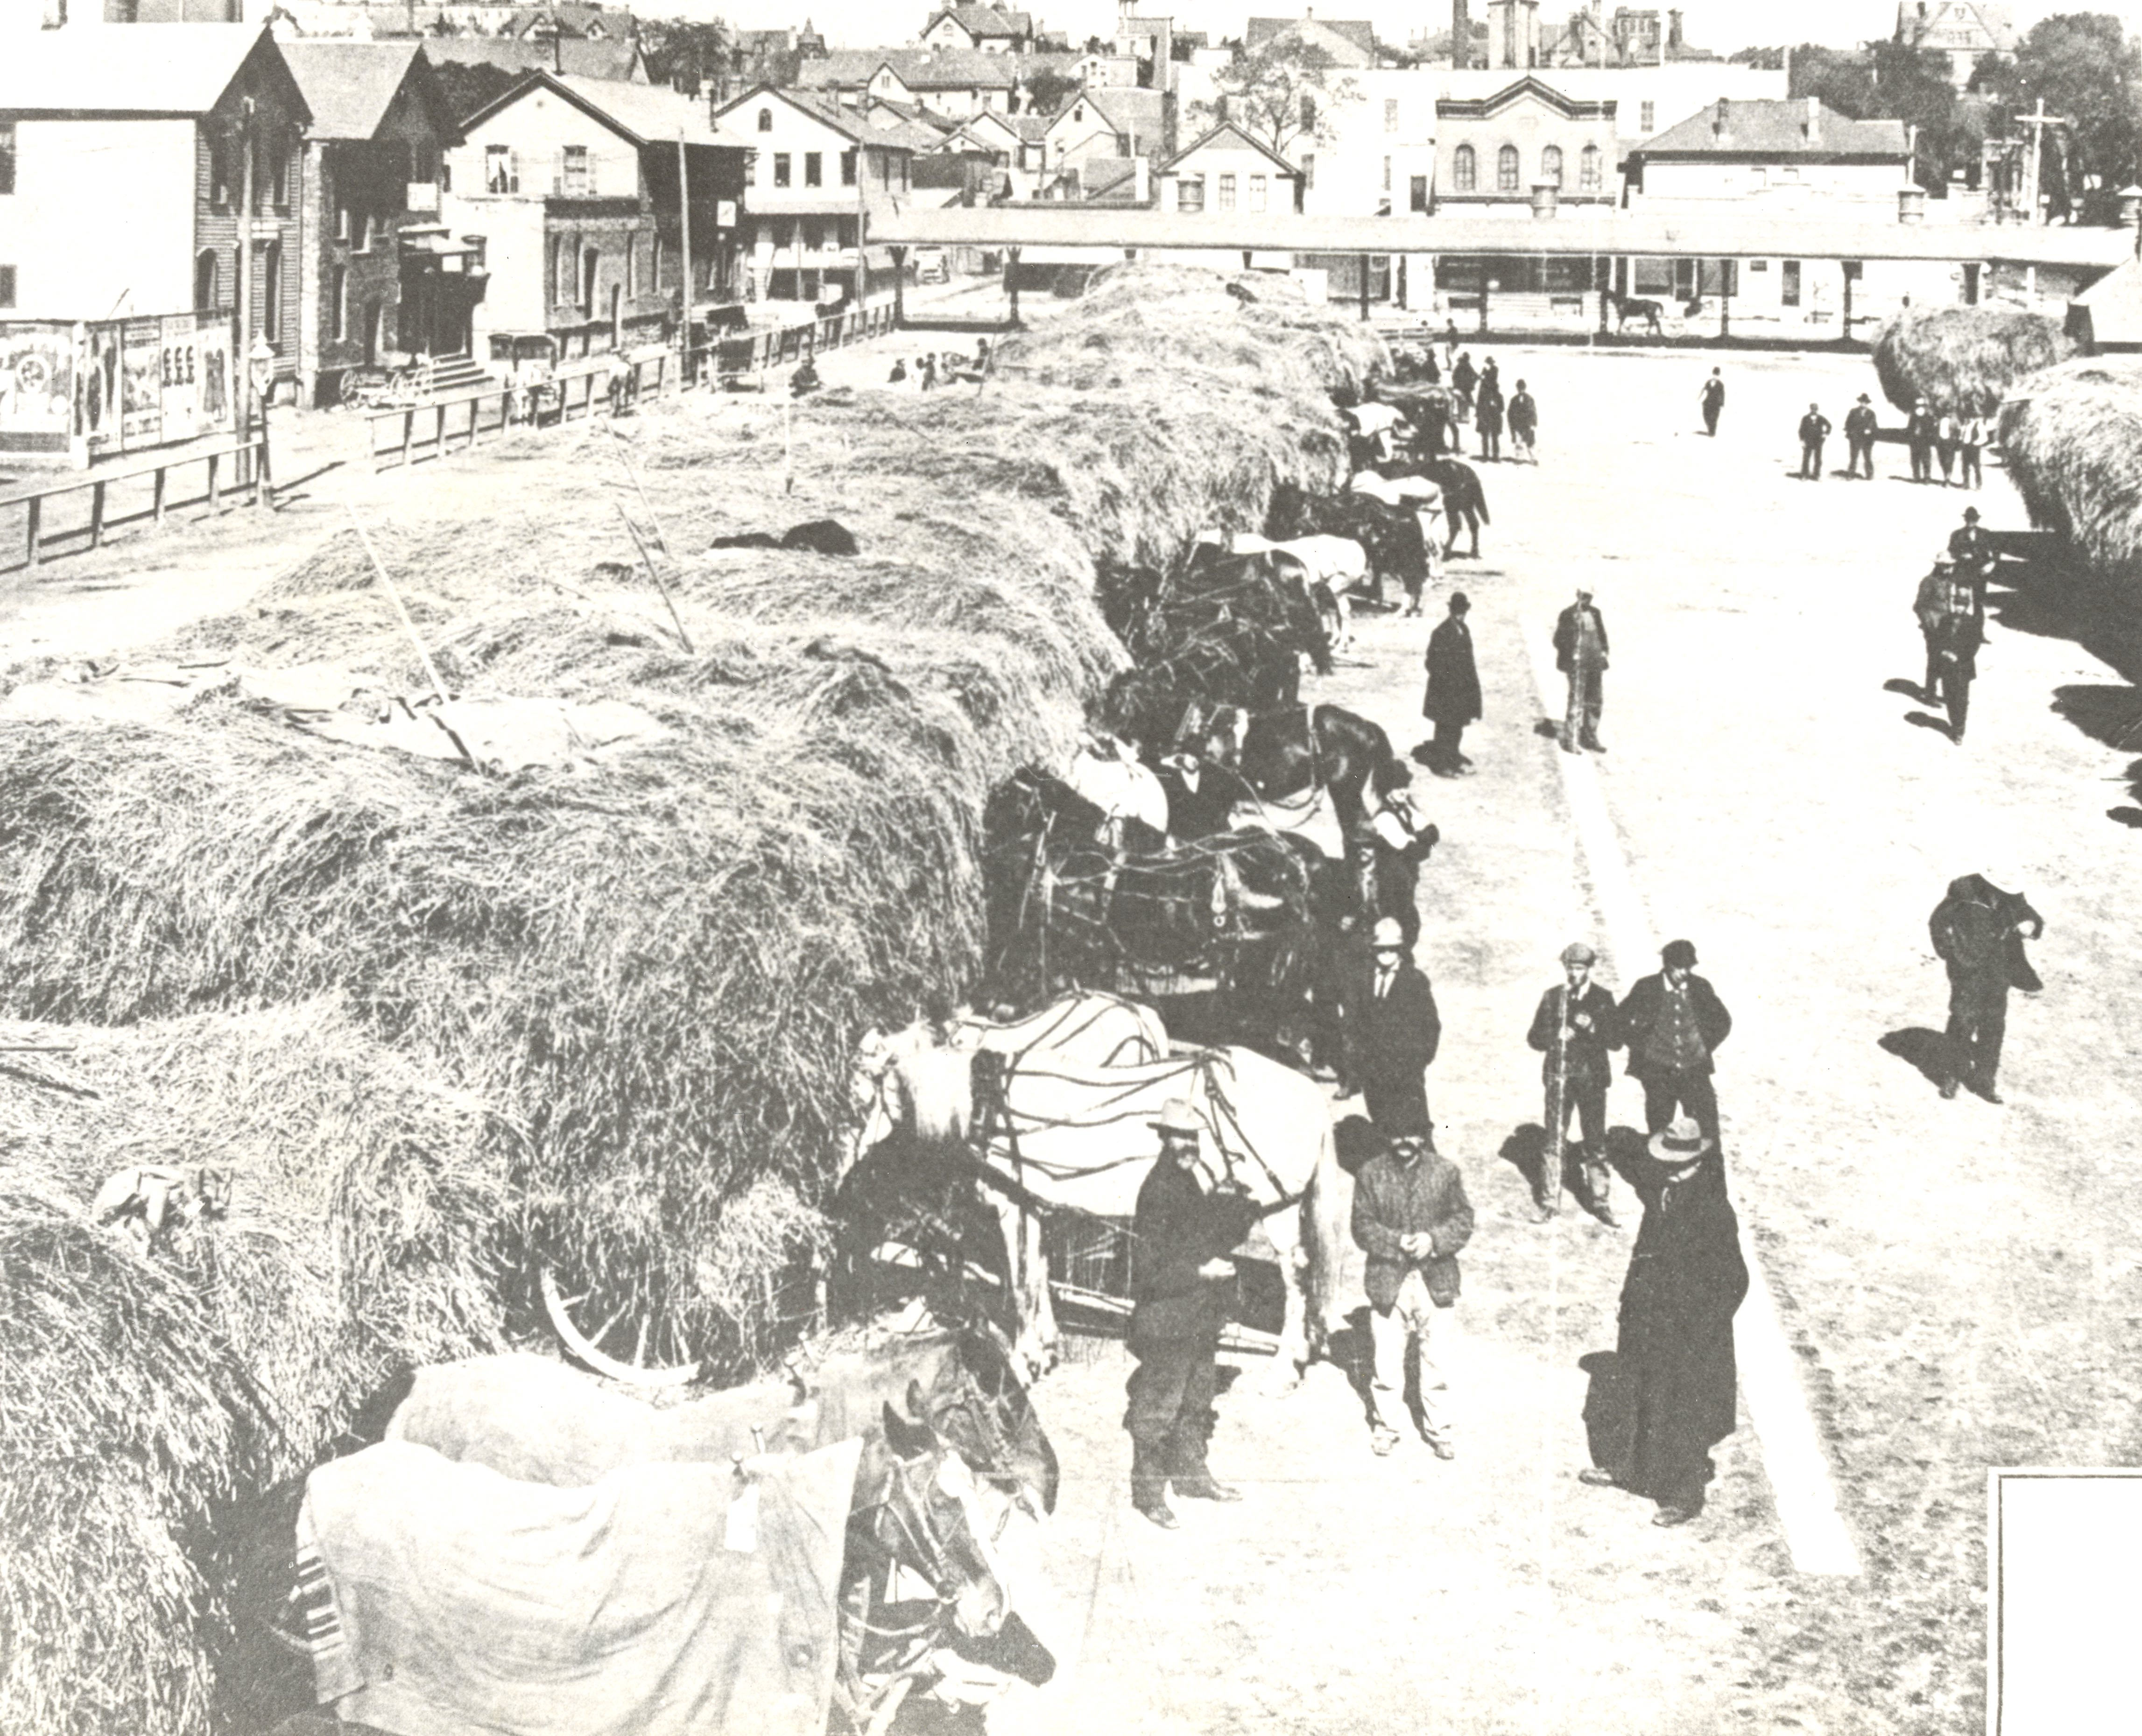 <table class=&quot;lightbox&quot;><tr><td colspan=2 class=&quot;lightbox-title&quot;>Selling Hay at Market Square</td></tr><tr><td colspan=2 class=&quot;lightbox-caption&quot;>Surplus hay from local farmers is sold at Market Square (now, appropriately, the Haymarket Square area) to in-town users such as the fire department, milk dairies, and vegetable vendors.</td></tr><tr><td colspan=2 class=&quot;lightbox-spacer&quot;></td></tr><tr class=&quot;lightbox-detail&quot;><td class=&quot;cell-title&quot;>Source: </td><td class=&quot;cell-value&quot;>From the Historic Photo Collection of the Milwaukee Public Library. Reprinted with permission.<br /><a href=&quot;http://content.mpl.org/cdm/singleitem/collection/HstoricPho/id/1214/rec/7&quot; target=&quot;_blank&quot;>Milwaukee Public Library </a></td></tr><tr class=&quot;filler-row&quot;><td colspan=2>&nbsp;</td></tr></table>